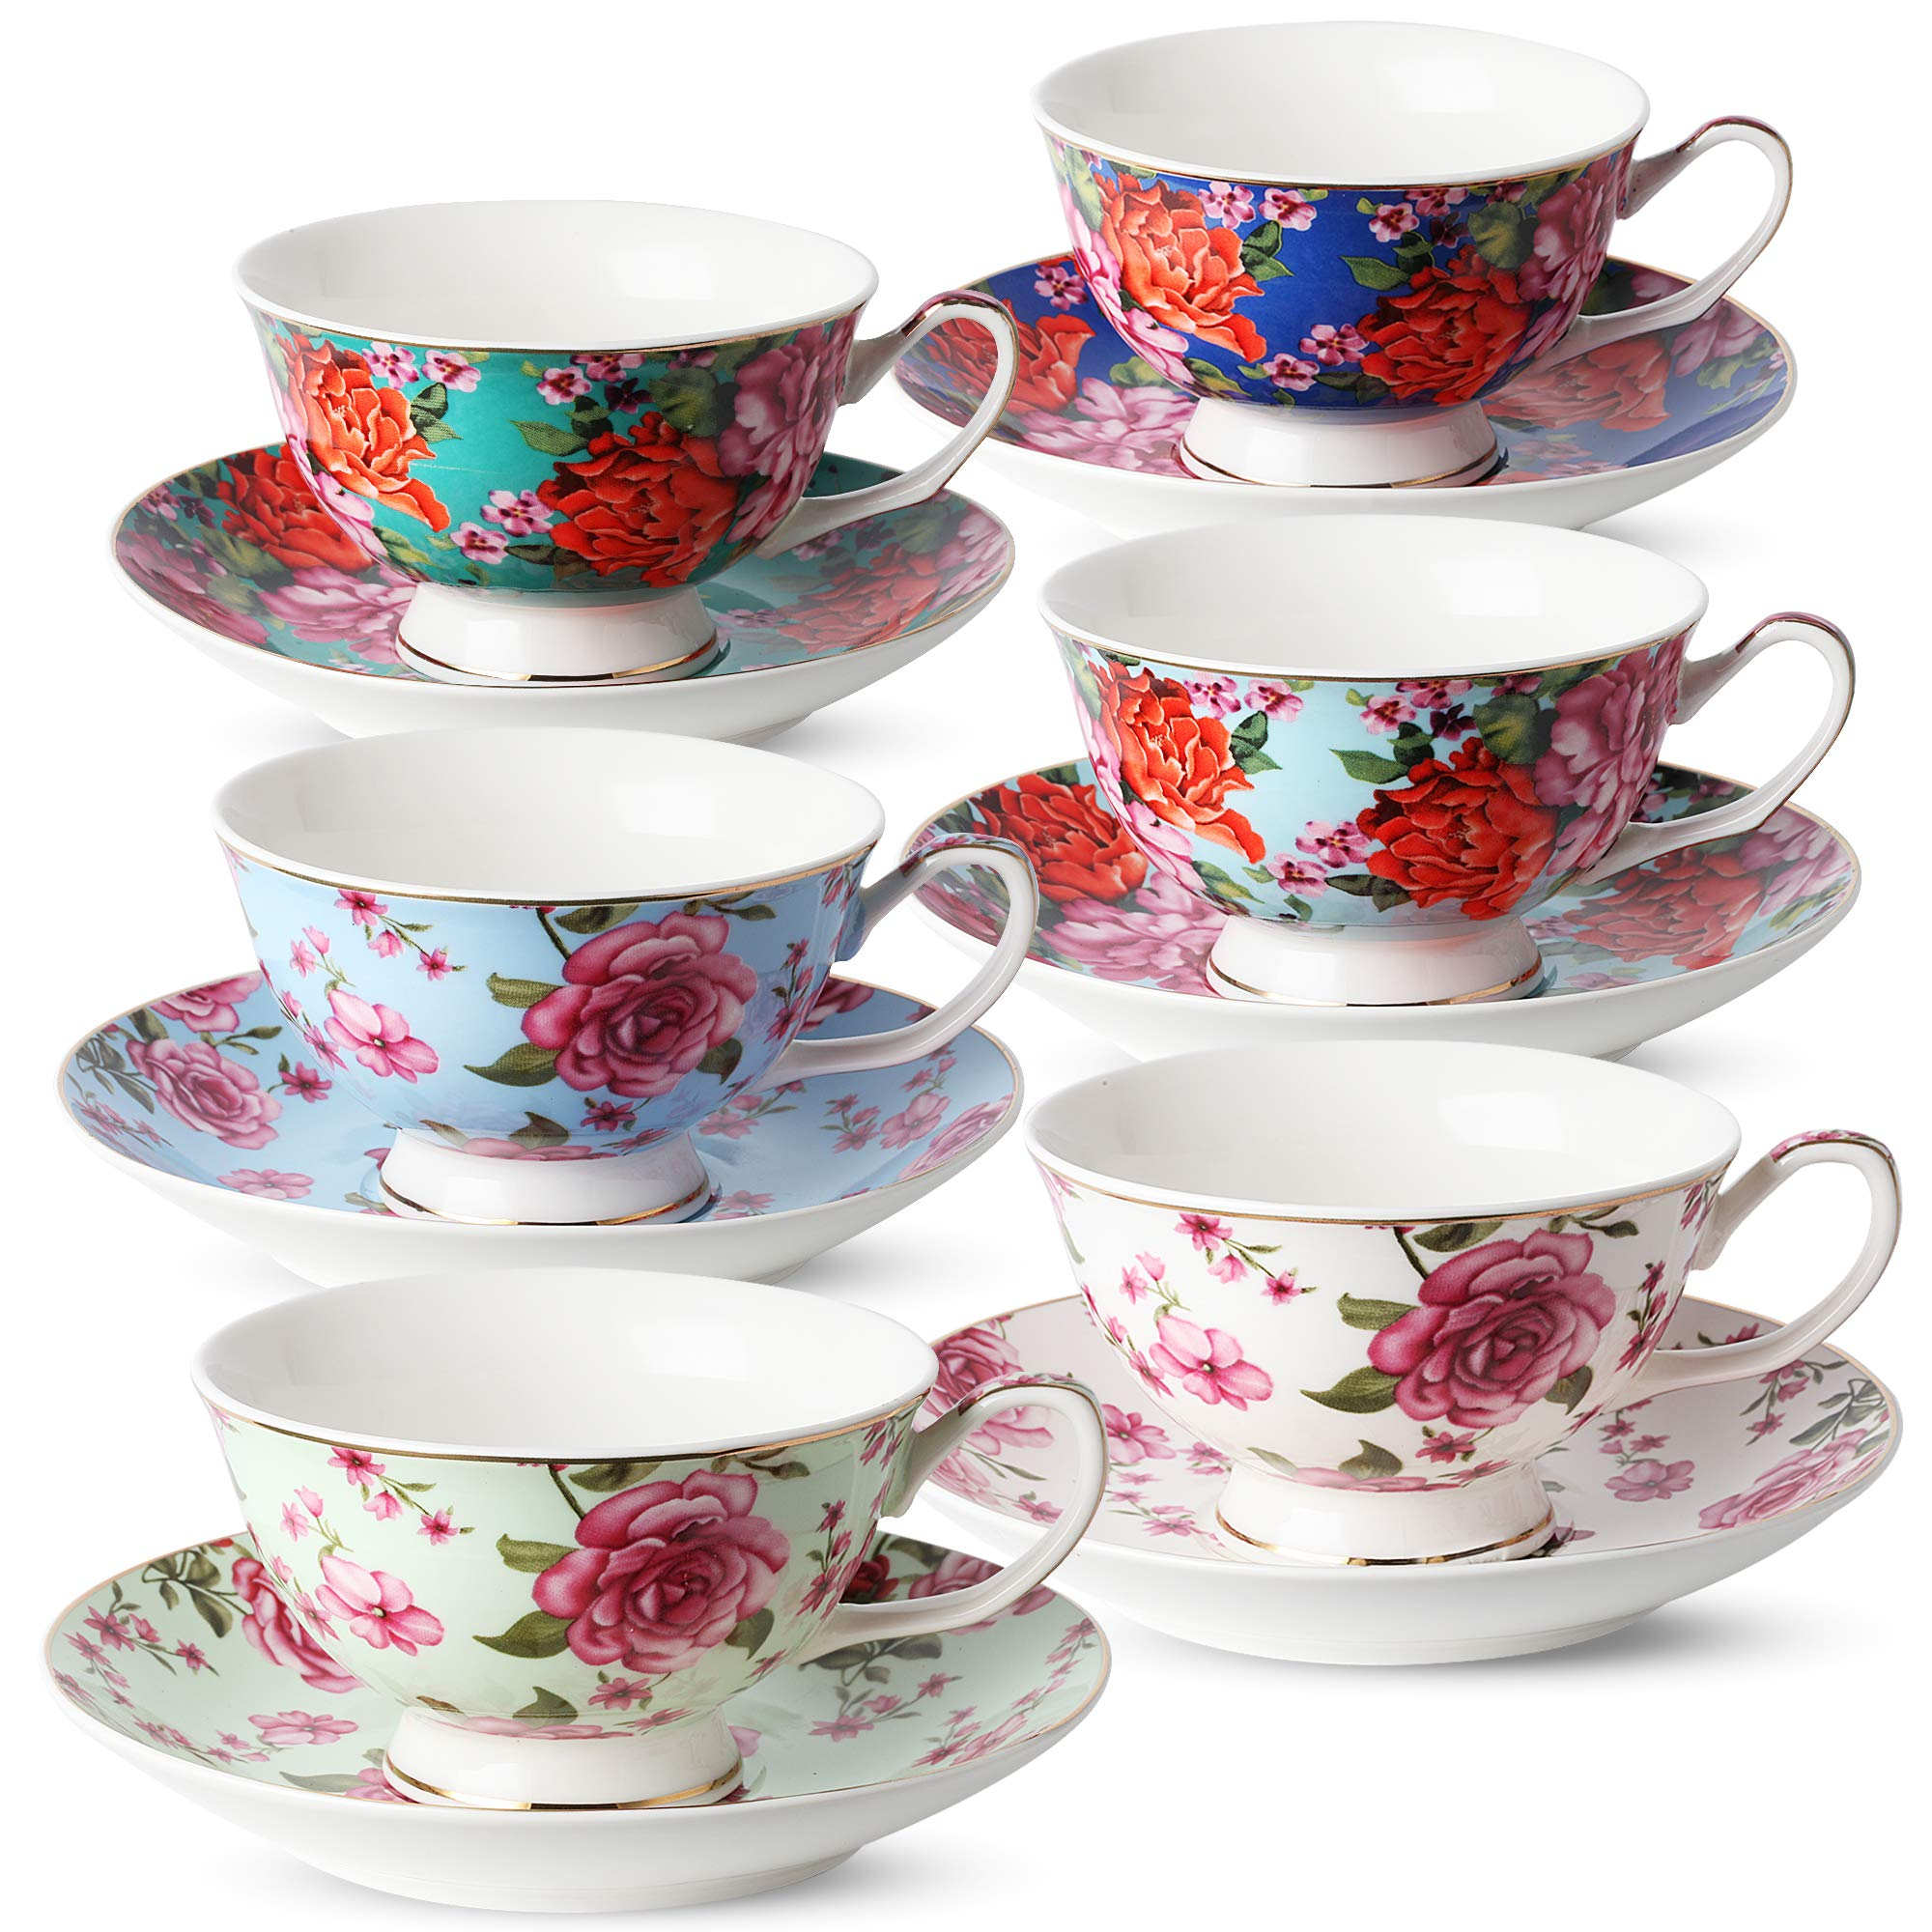 BTäT- Tea Cups, Tea Cups and Saucers Set of 6, Tea Set, Floral Tea Cups (7oz), Cappuccino Cups, Latte Cups, Tea Set for Adults, Porcelain Tea Cups, Tea Cups for Tea Party, Rose Teacups, China Tea Cups